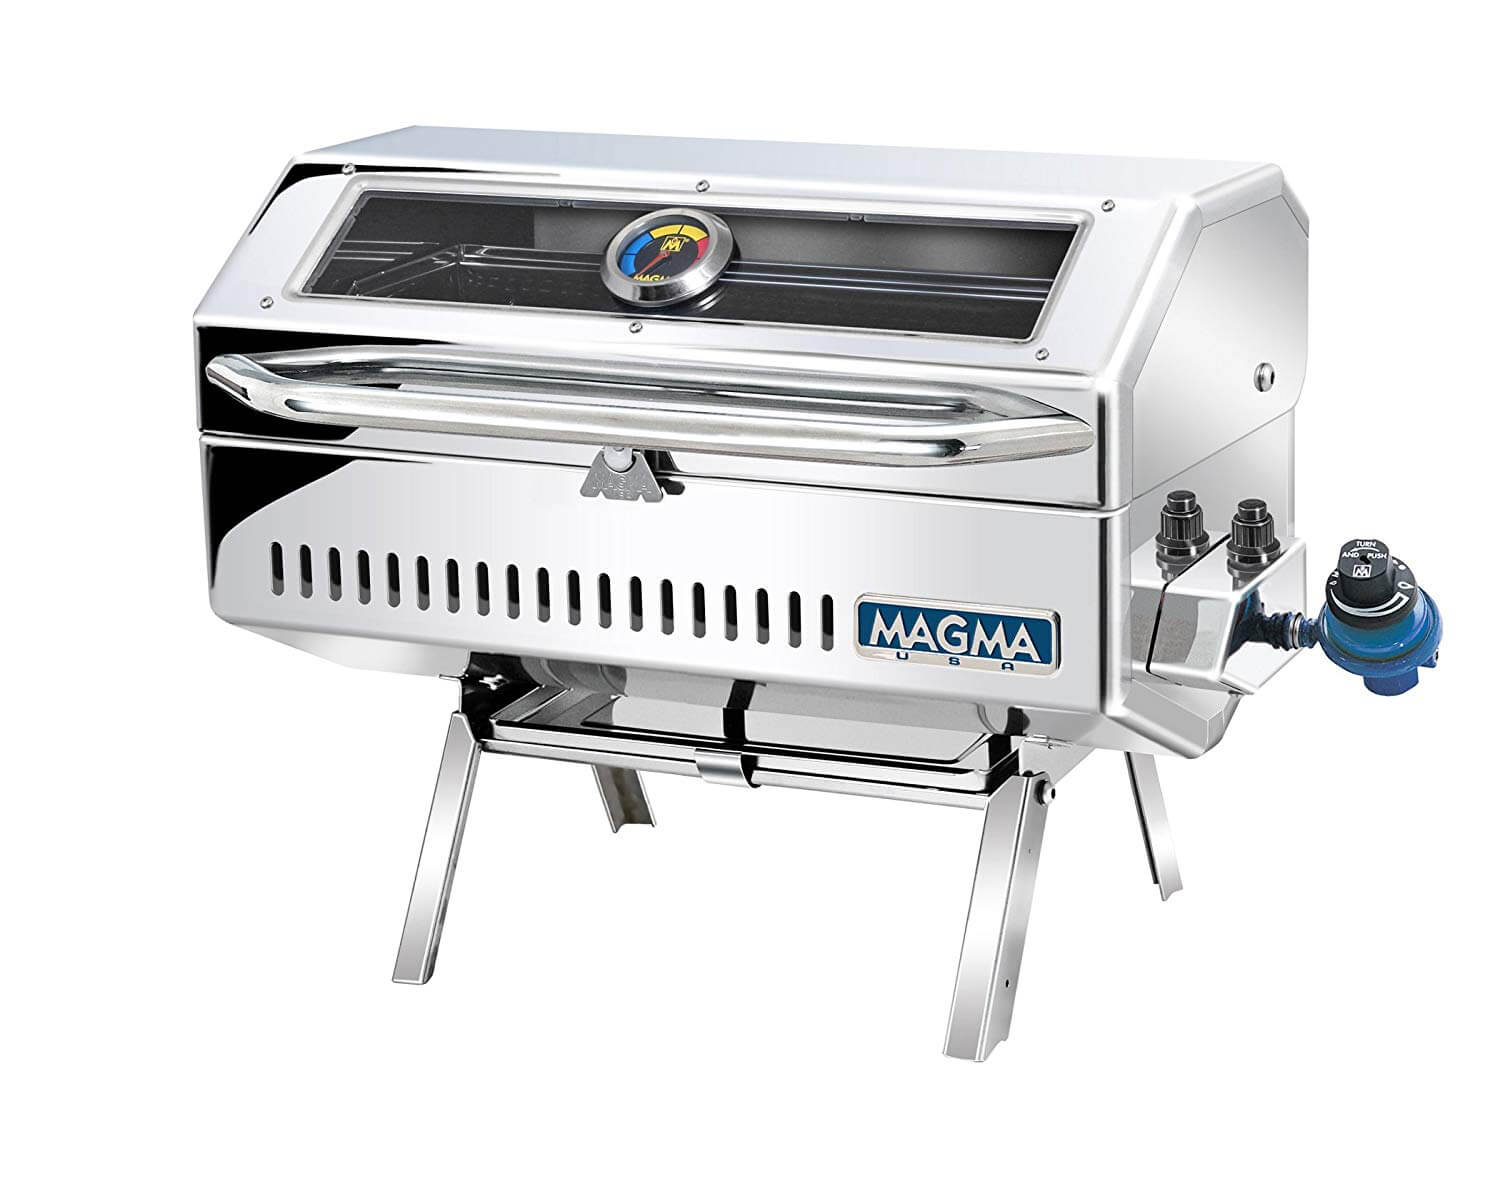 Magma A10-918-2GS Newport 2 Infra Red Gourmet Series Gas Grill